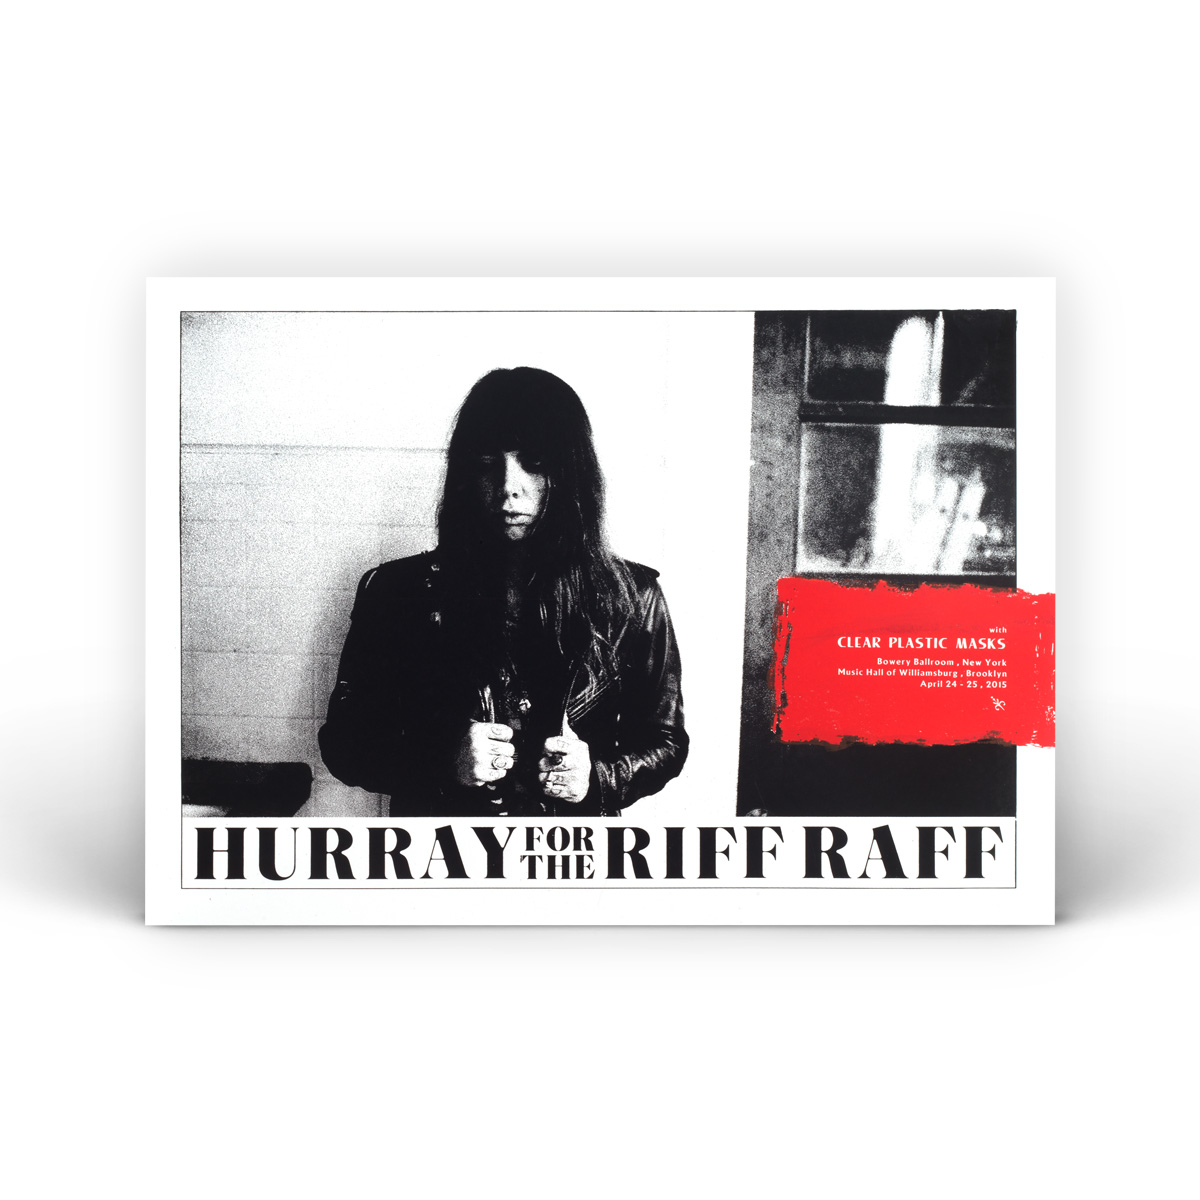 HFTRR w/ CPM Show Poster